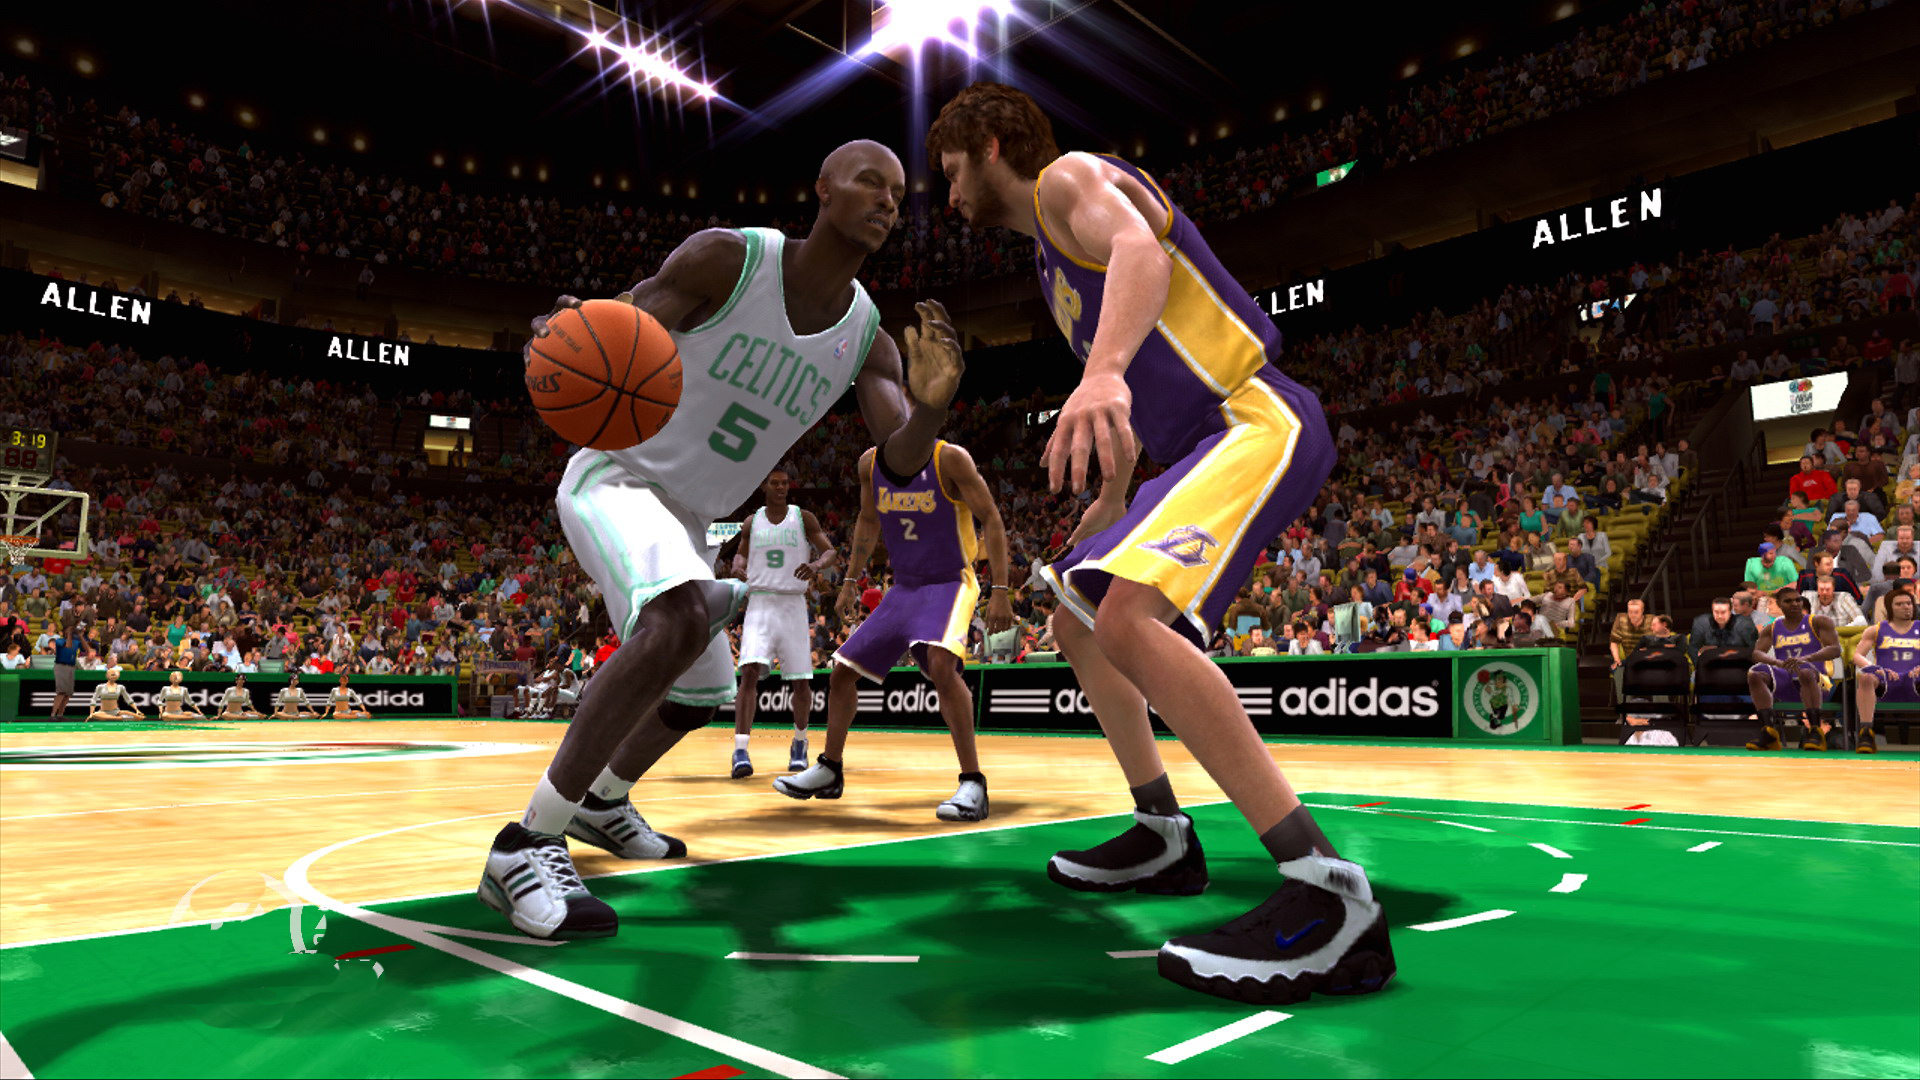 NBA Live 08 'Go-to Moves' Trailer